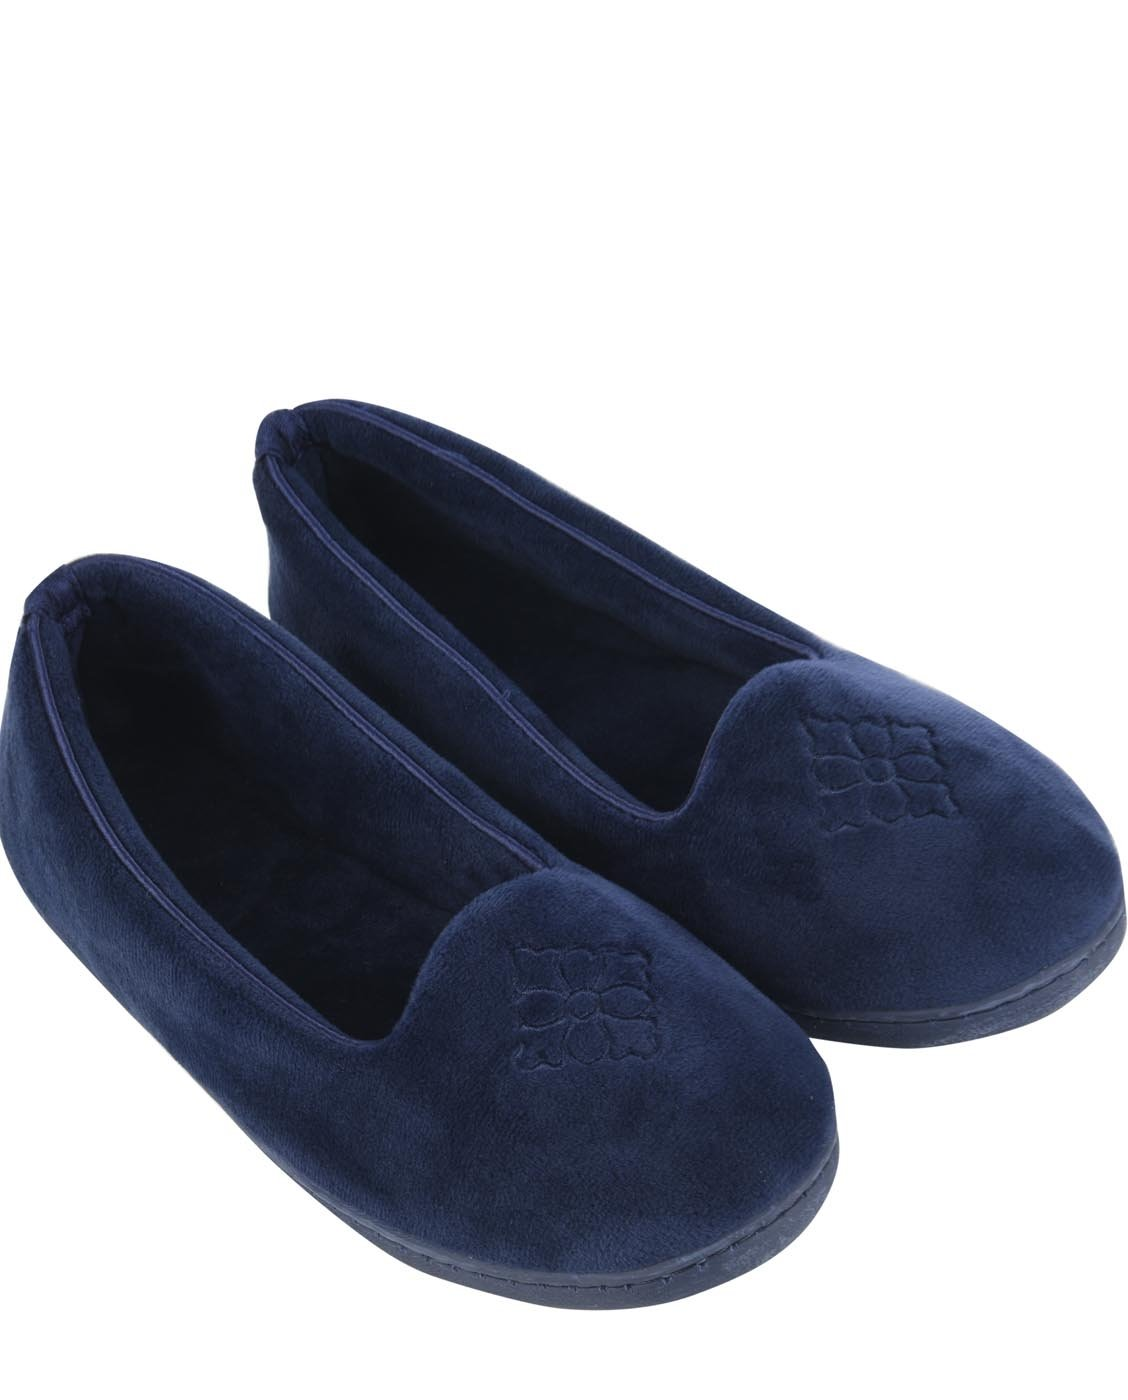 Dearfoams Plush Velour Closed-Back Women's Slipper – Padded Microfiber Slip-Ons with a Durable Outsole - 745,Peacoat,Small/5-6 M US